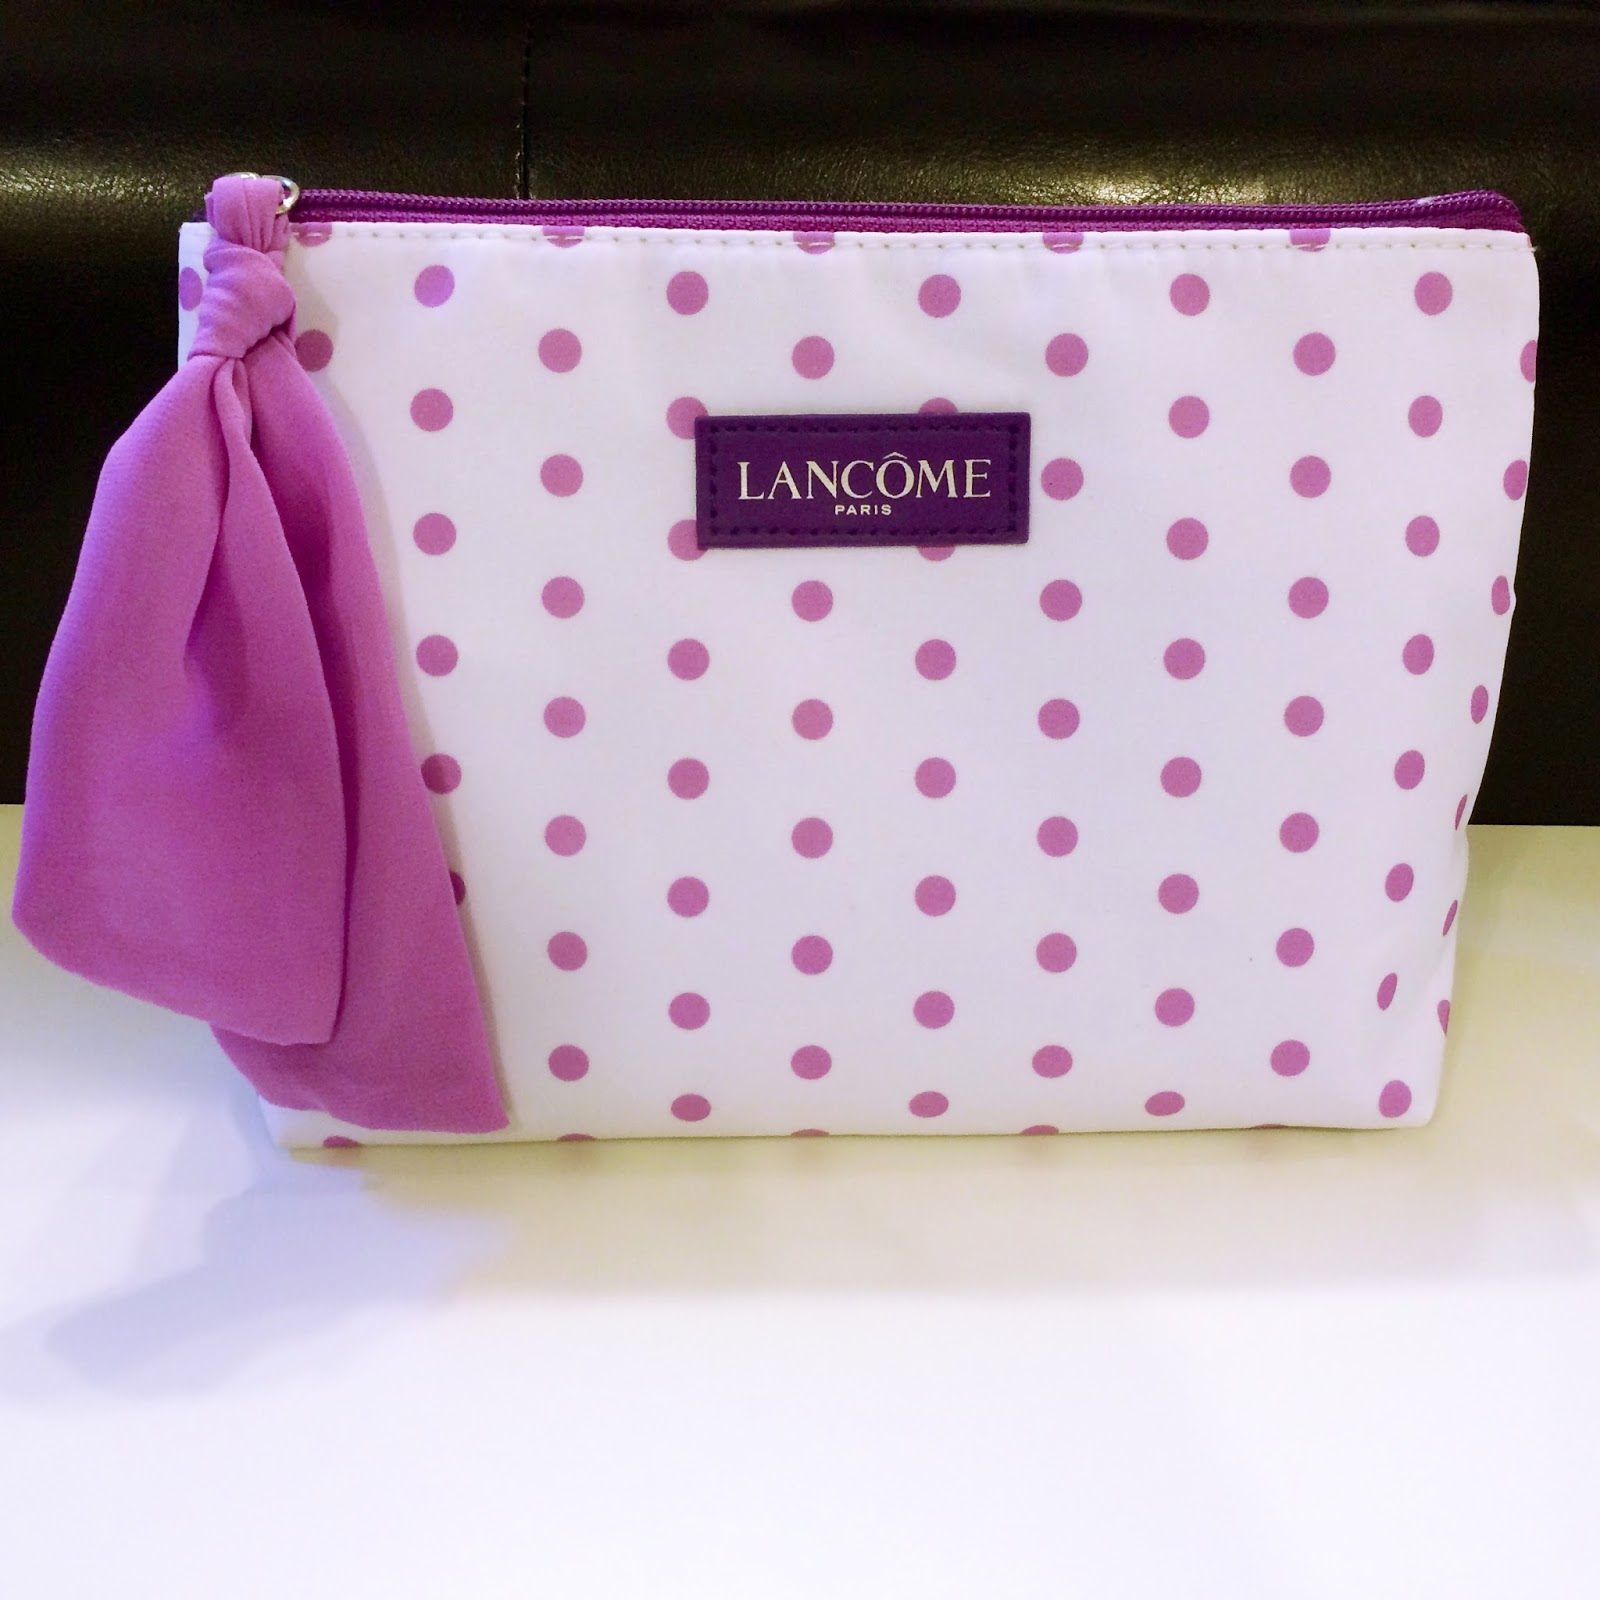 The Final Piece Of Mini Kit That I Received What This Purple Polka Dot Makeup Bag It Is Made From A Canvas Like Material Which Makes Difficult To